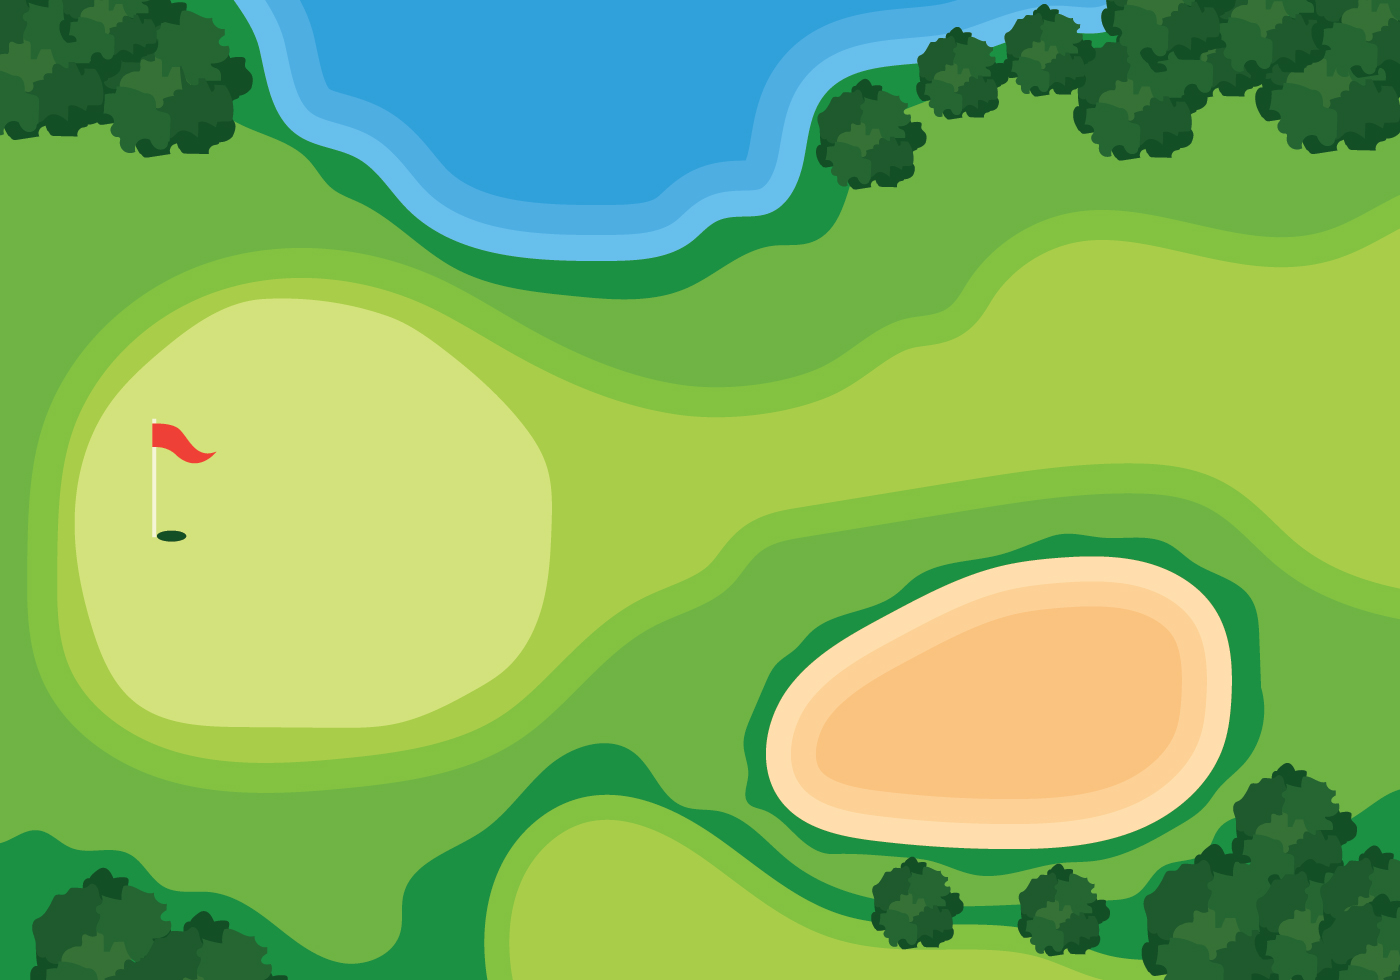 Overhead View Golf Course Illustration Download Free Vector Art Stock Graphics Amp Images